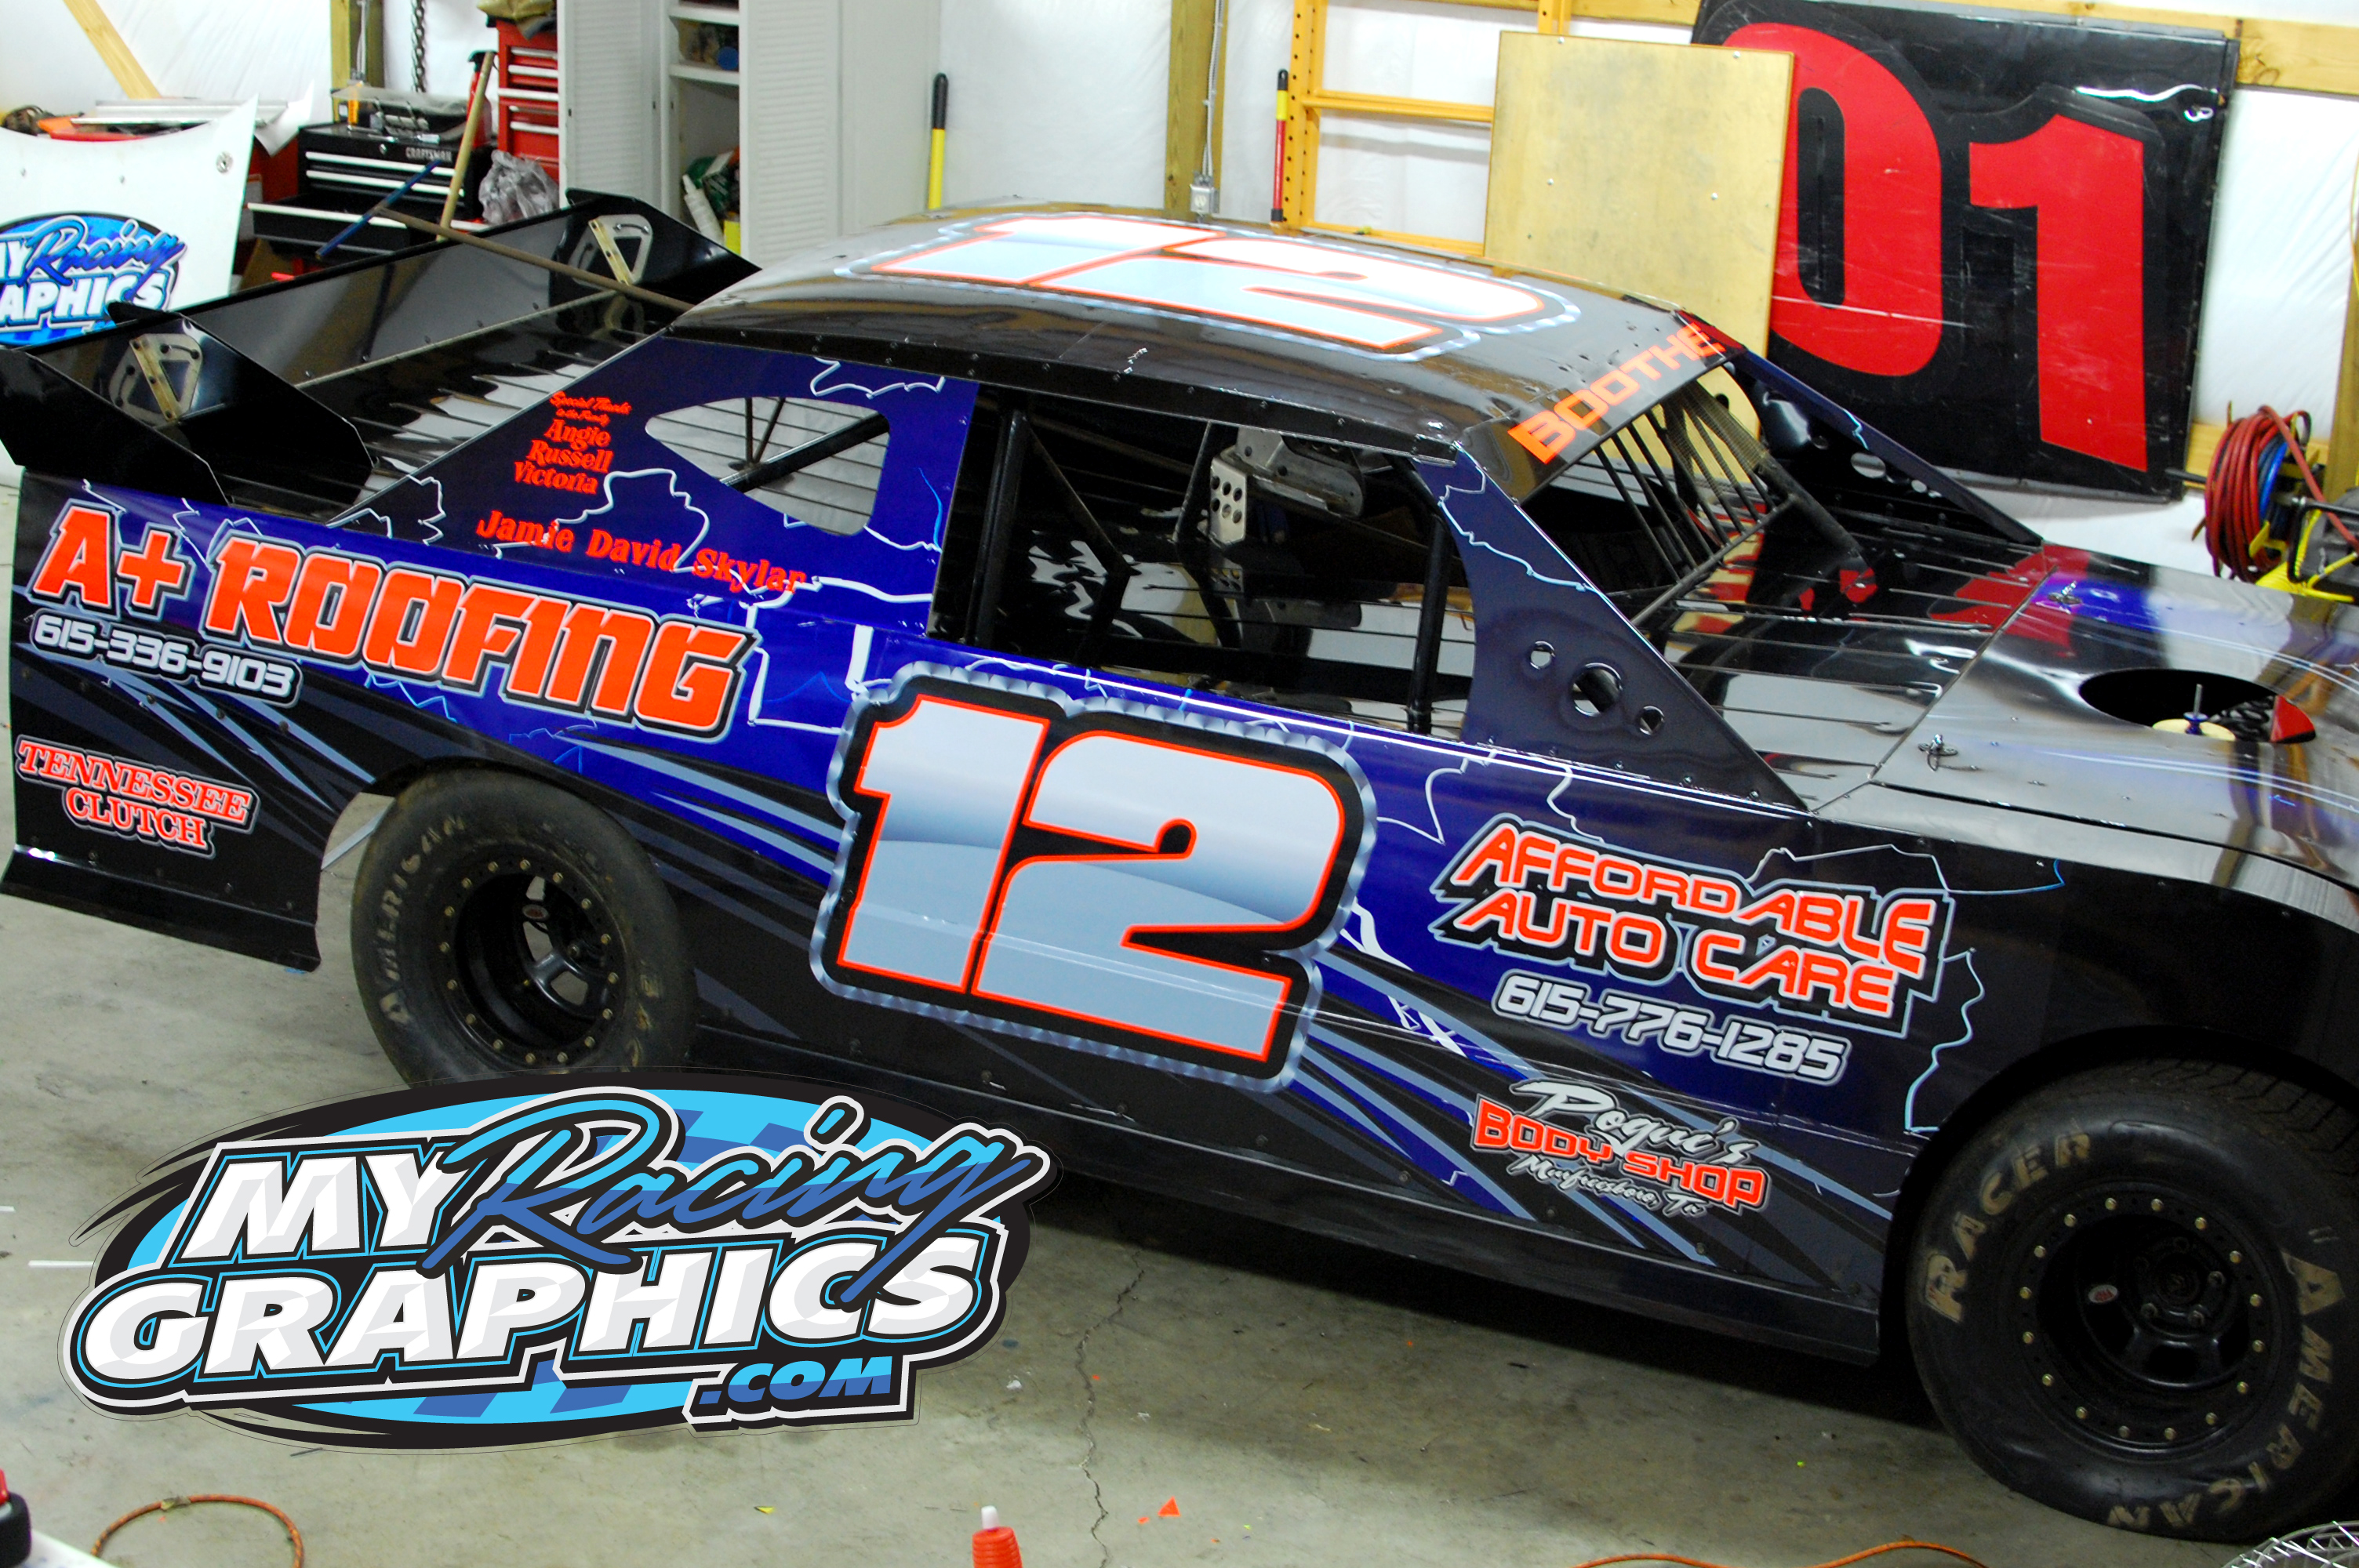 Russell Booth Dirt Street Stock Wrap